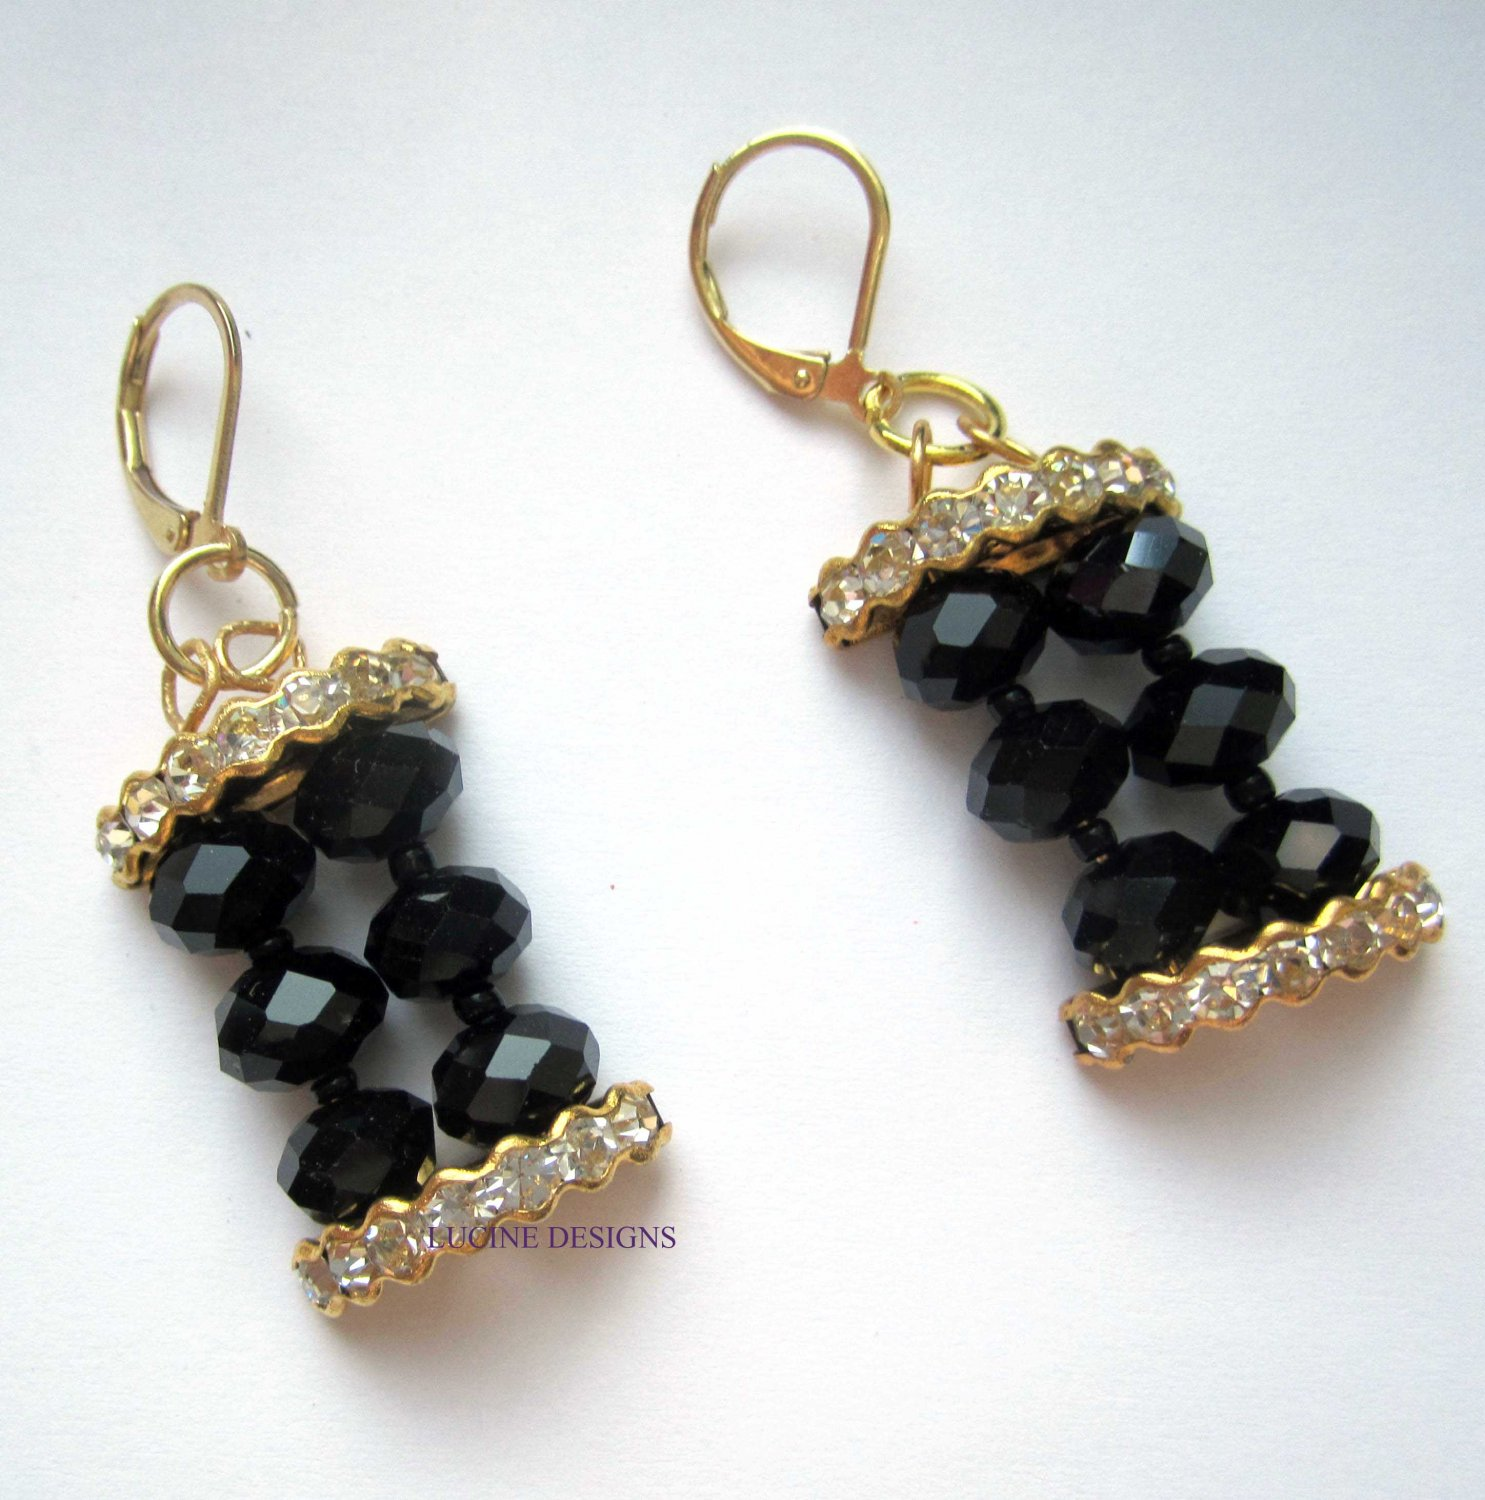 Gold black earrings with crystals fashion jewelry